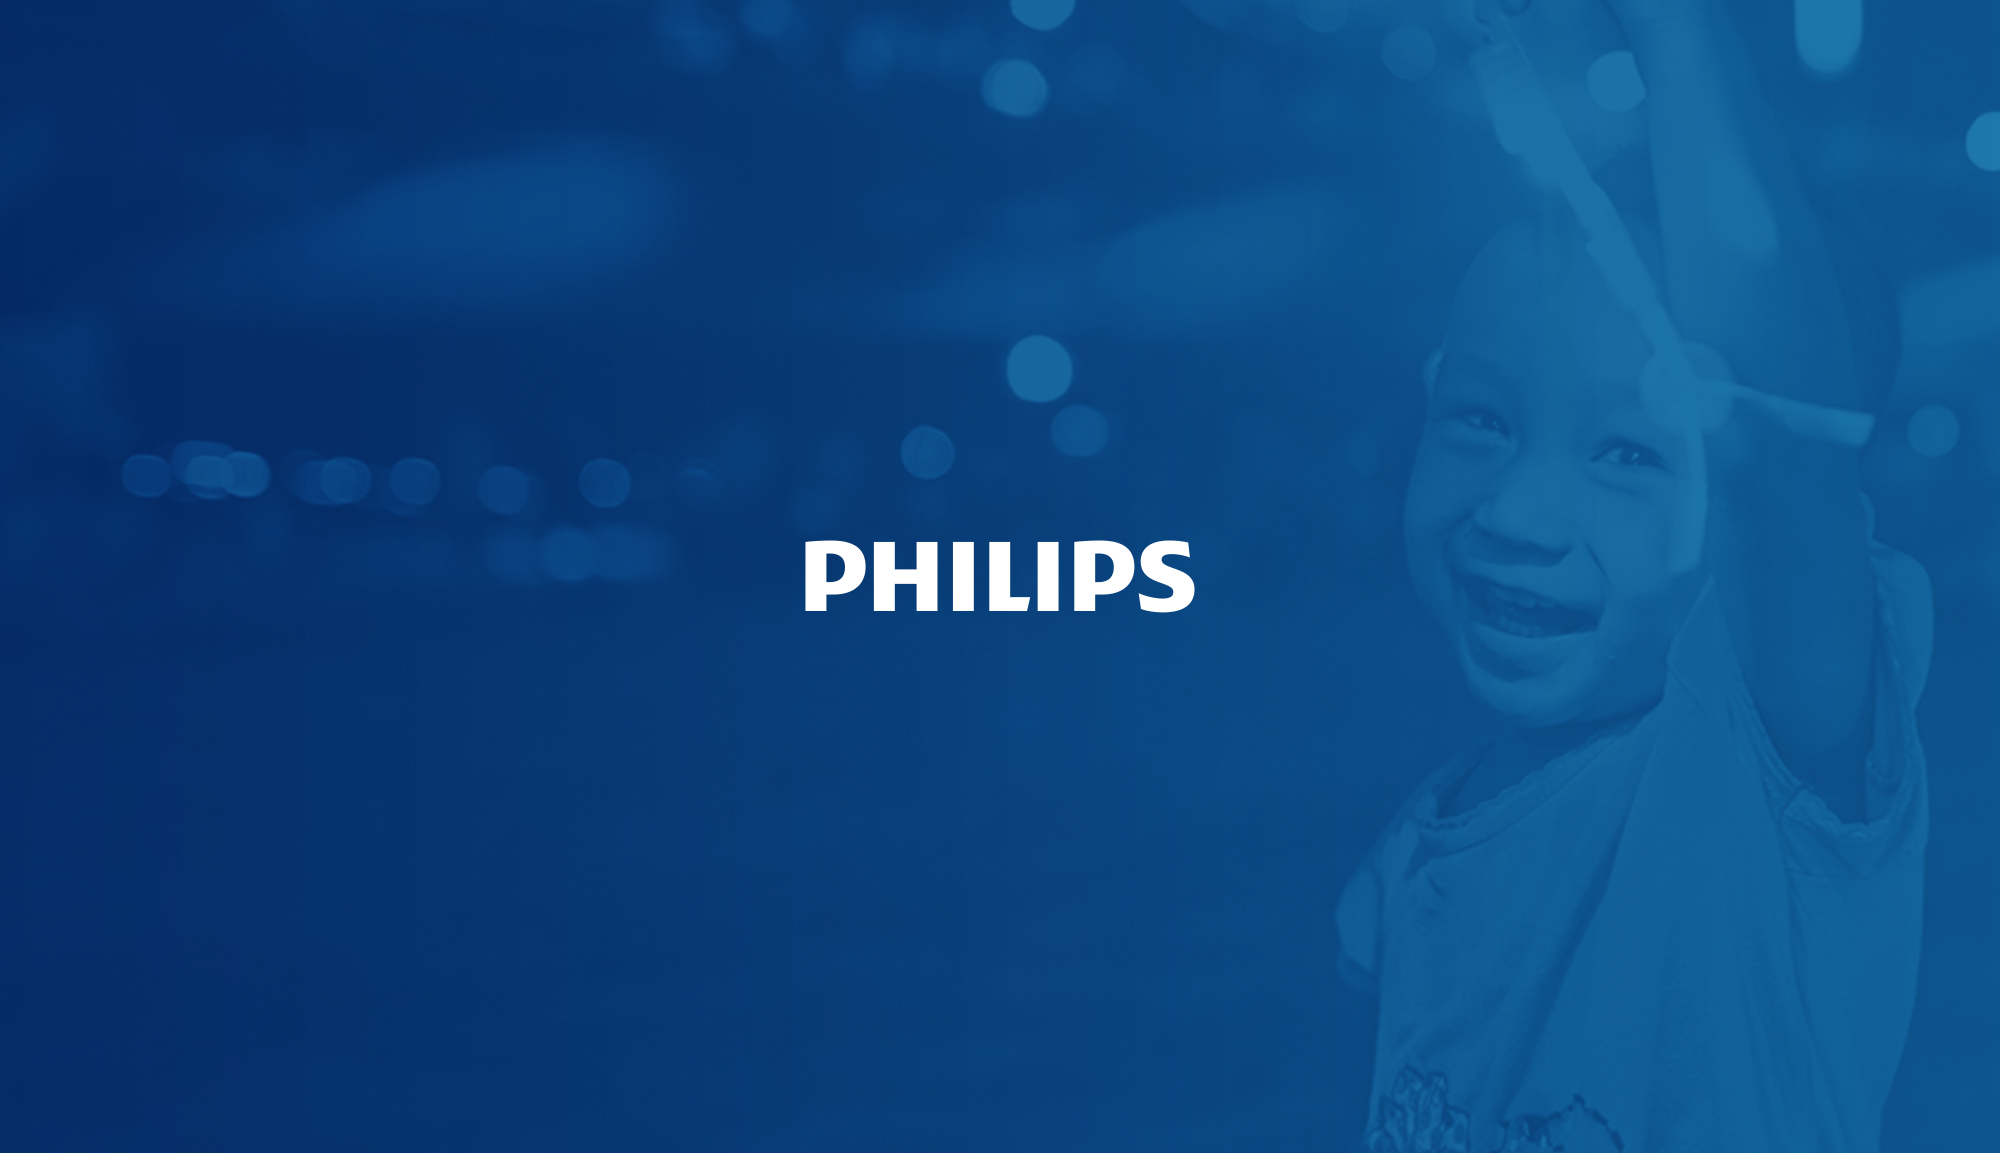 Philips - UI Design - Graphiste Freelance Lille